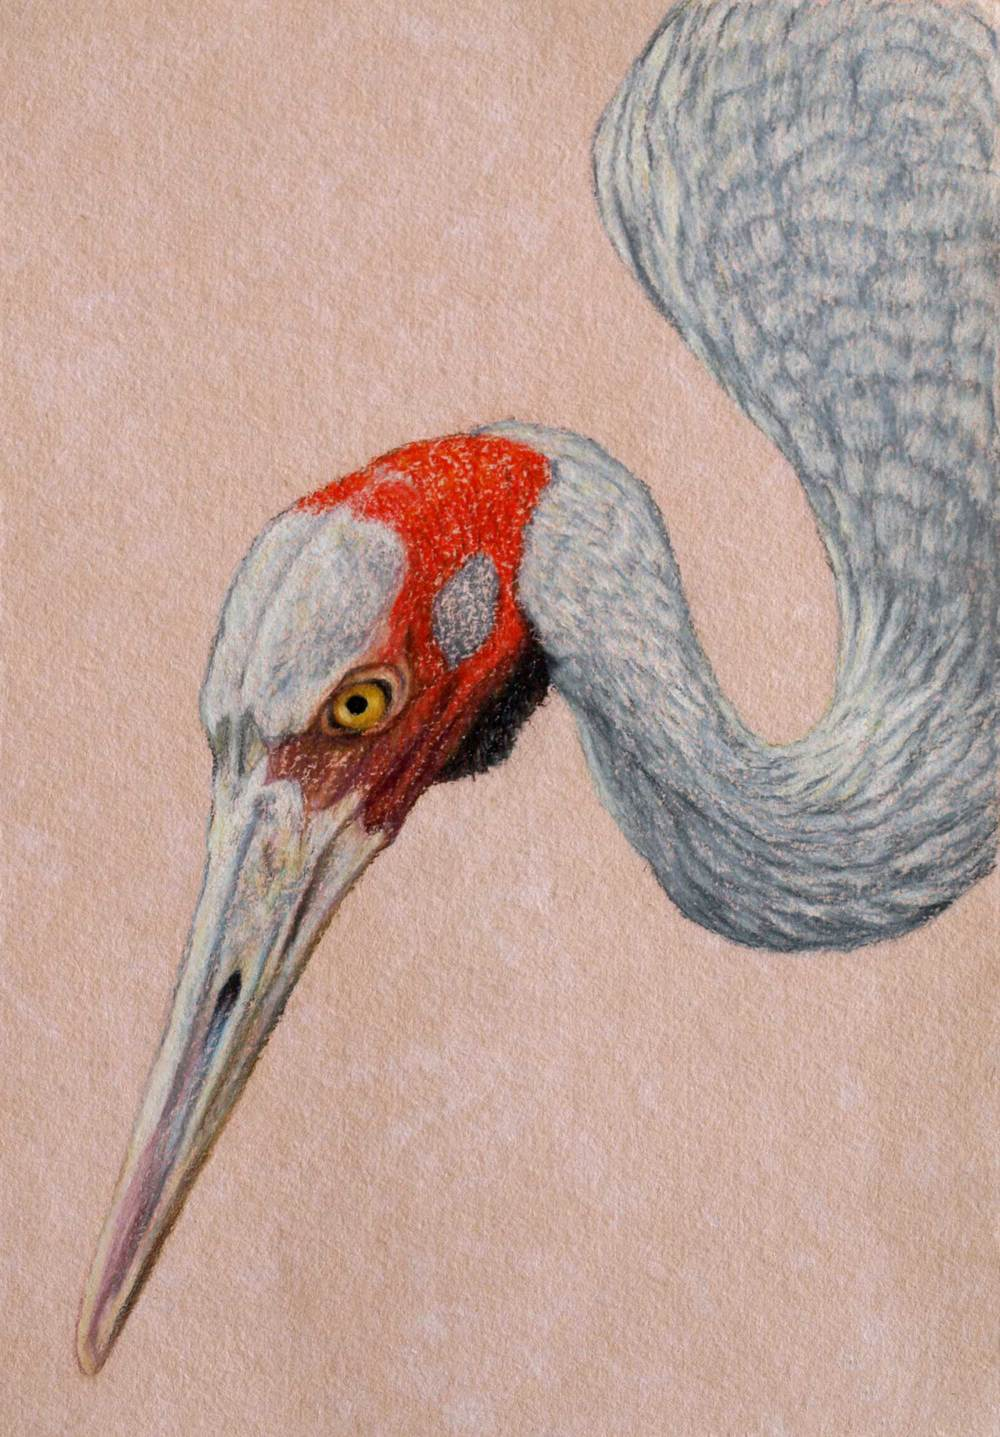 brolga-2-drawing-rachel-newling.jpg